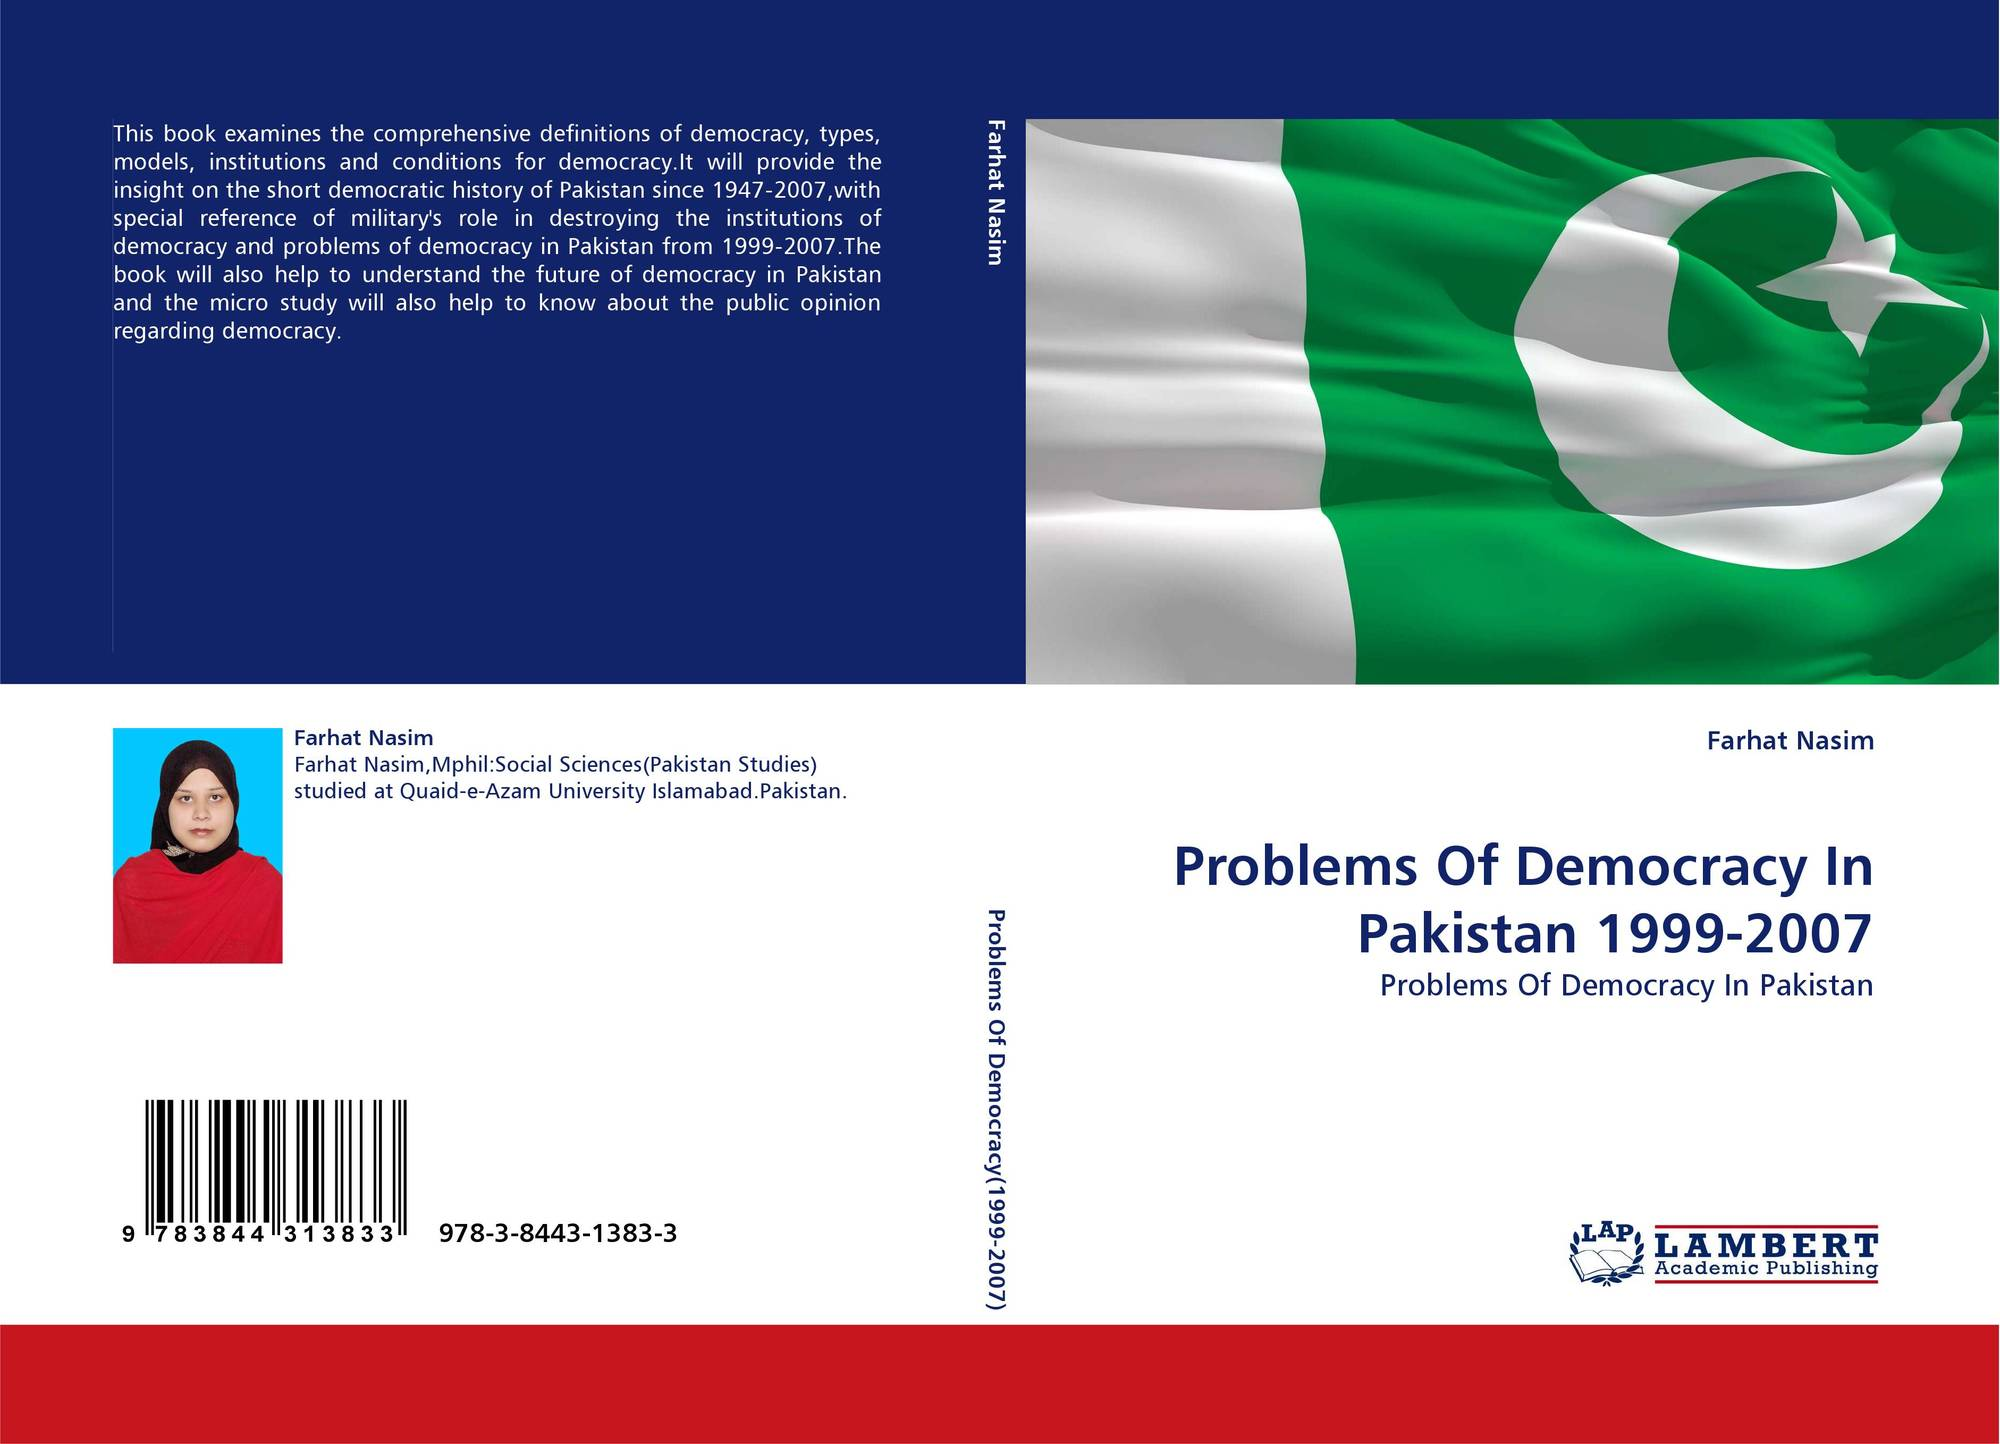 economic problems of pakistan The main issue is the extent and intensity of the socio-economic problems of pakistan which have soared to alarming levels i will discuss some major social and economic problems that are of serious concern for social scientists and political economists.